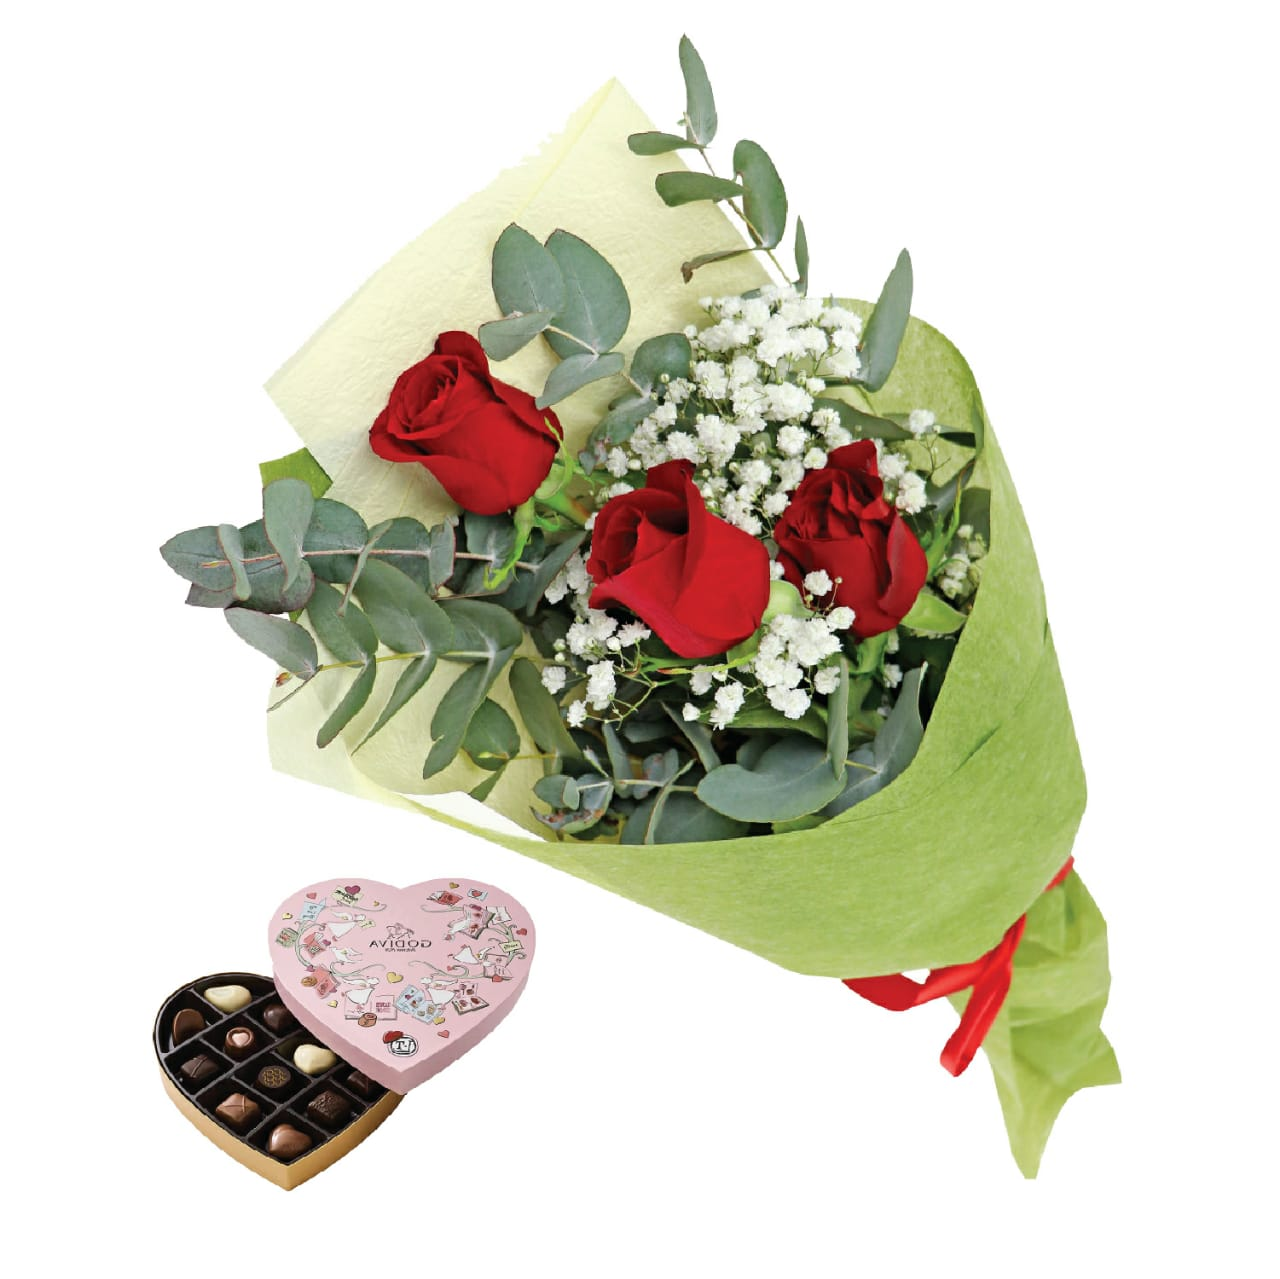 Rose's & Valentine's Day Heart Chocolate Gift Box